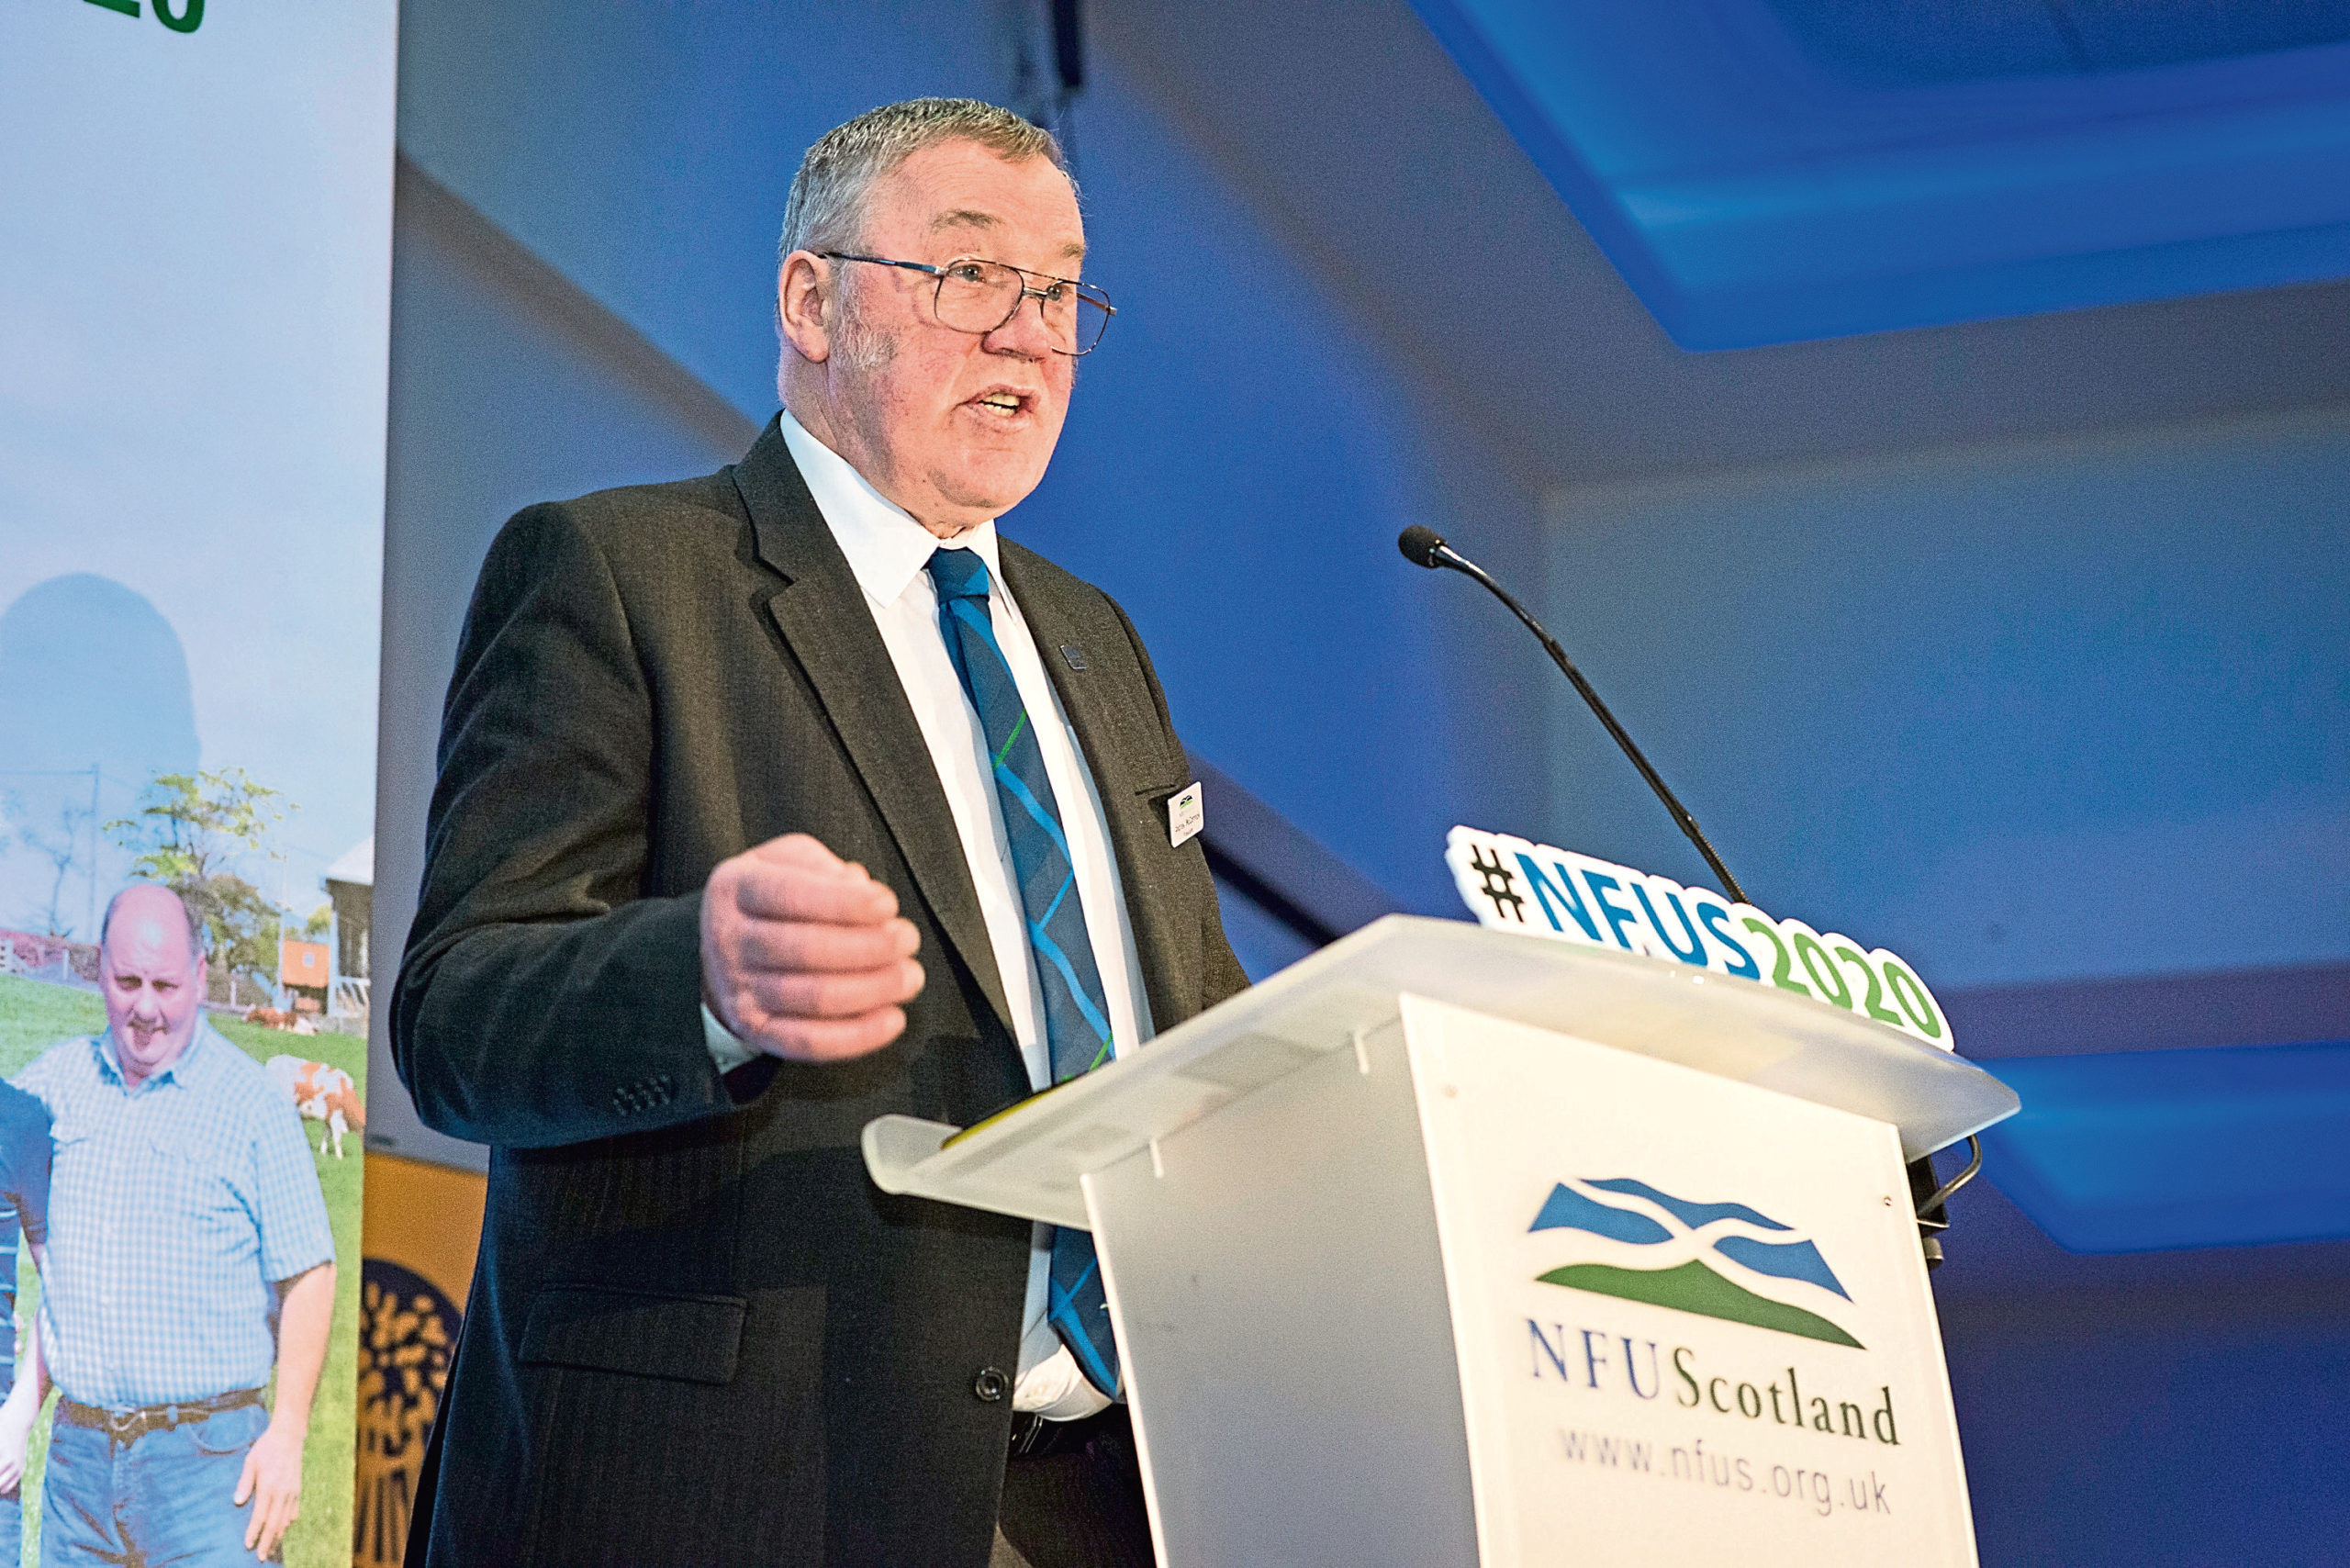 NFUS president Andrew McCornick has asked the union's membership to cancel meetings and gatherings until further notice.